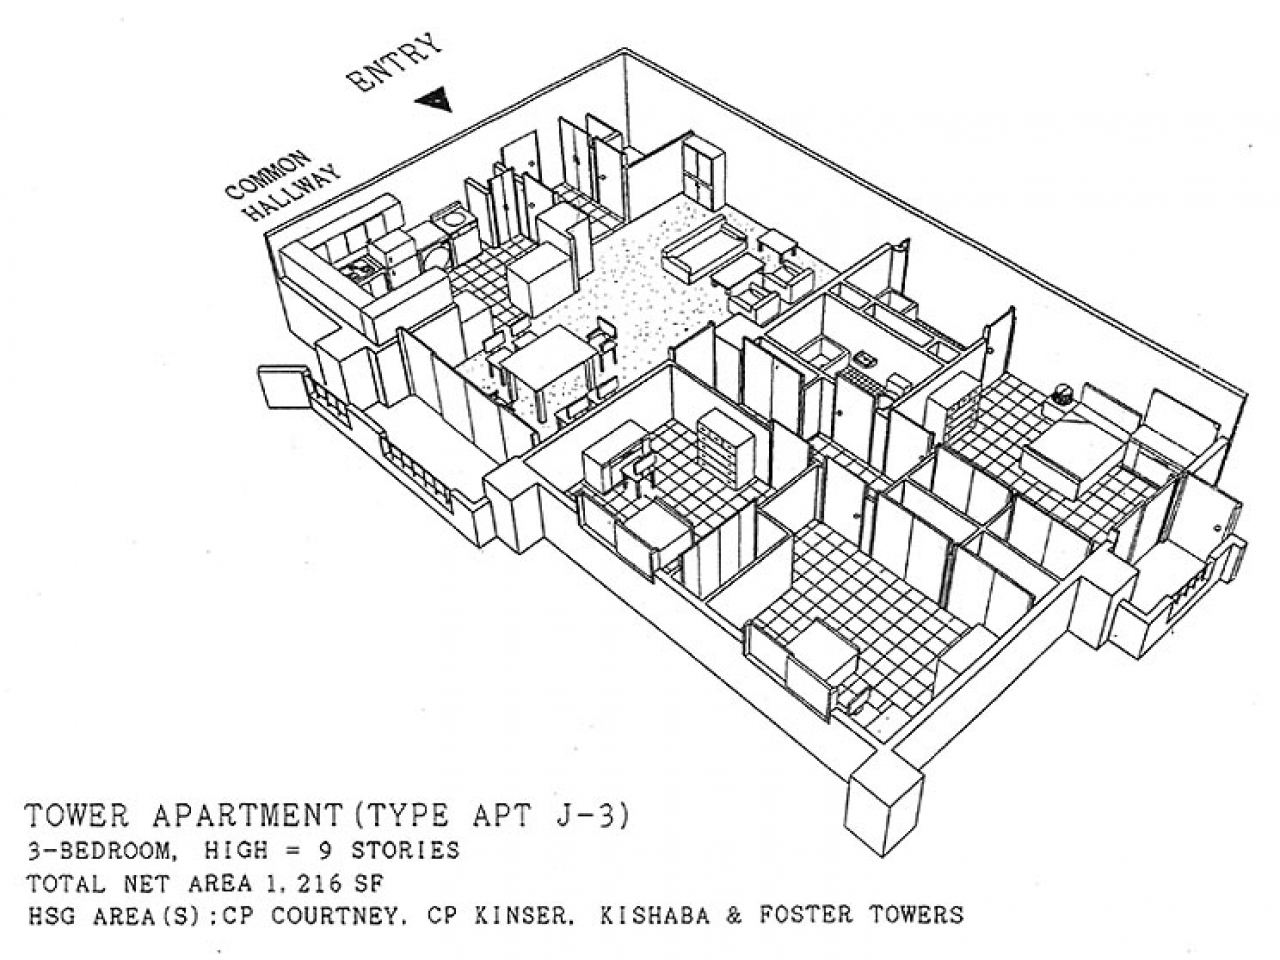 Camp Foster Housing Floor Plans Camp Foster Lodging, Camp